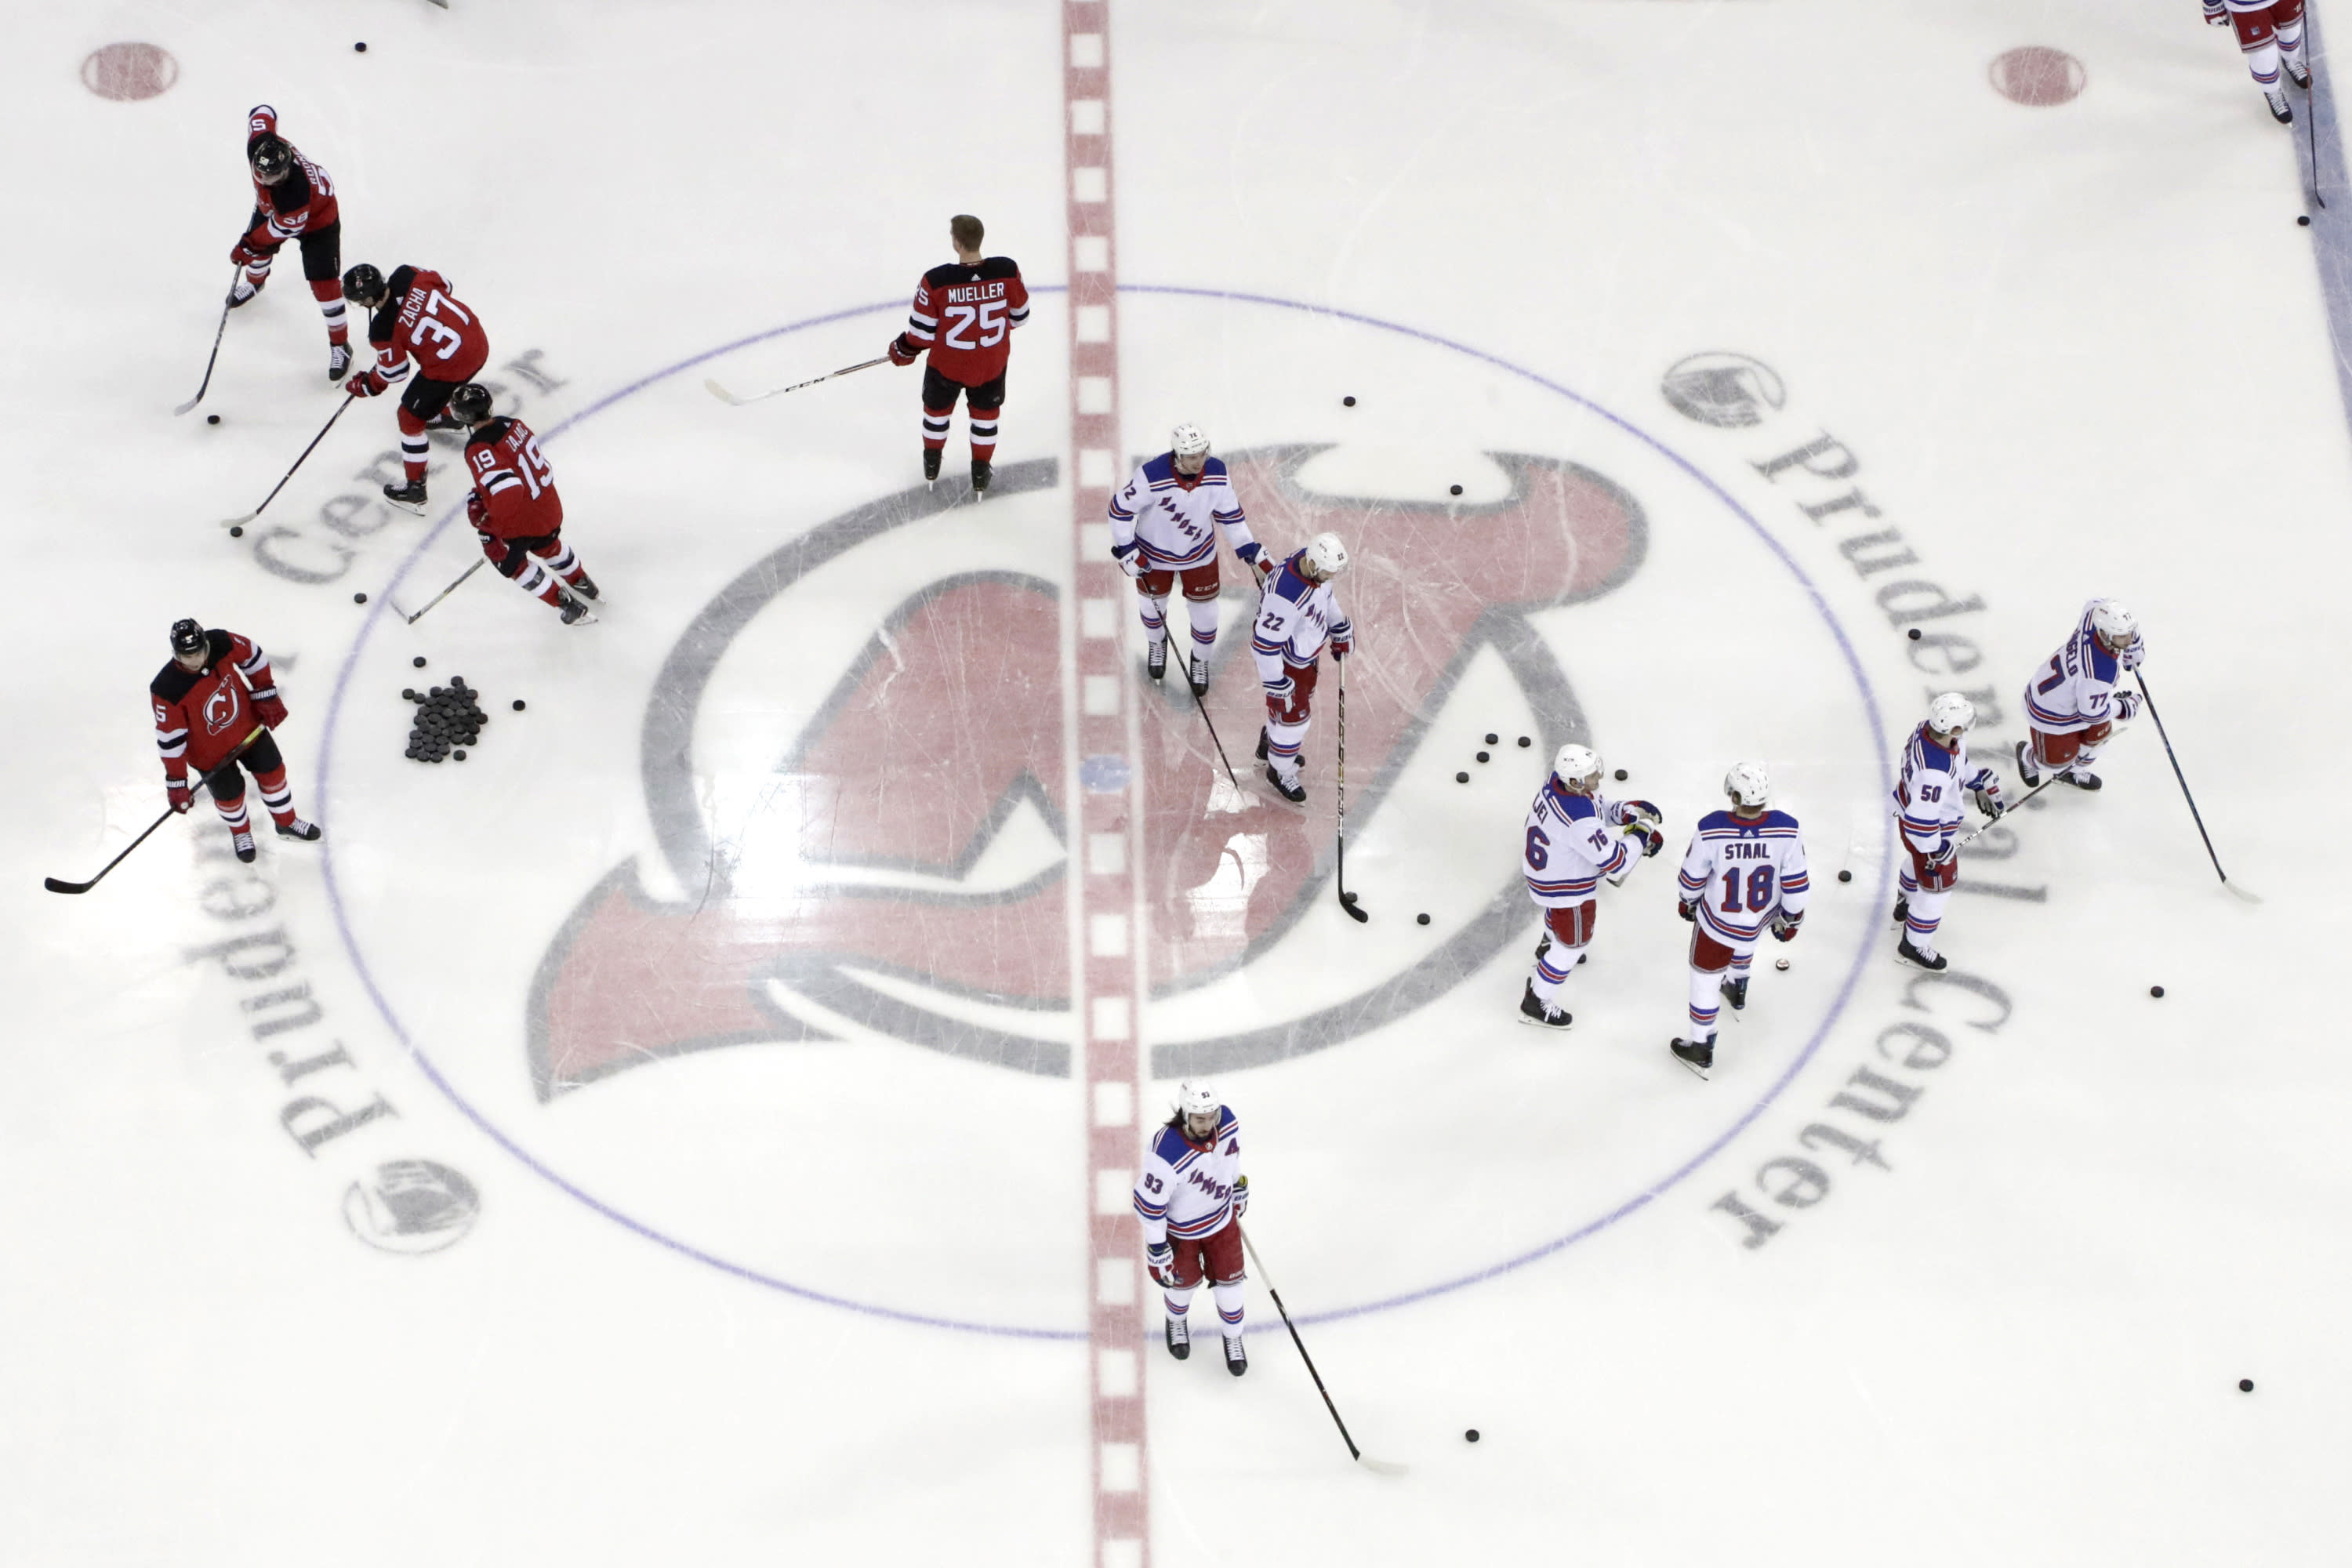 FILE - In this April 1, 2019, file photo, New Jersey Devils, left, and New York Rangers warm up for an NHL hockey game in Newark, N.J. Deputy Commissioner Bill Daly told The Associated Press on Sunday, July 5, 2020, that the NHL and NHL Players' Association have agreed on protocols to resume the season. Daly said the sides are still negotiating a collective bargaining agreement extension. A CBA extension is still crucial to the process. (AP Photo/Julio Cortez, File)